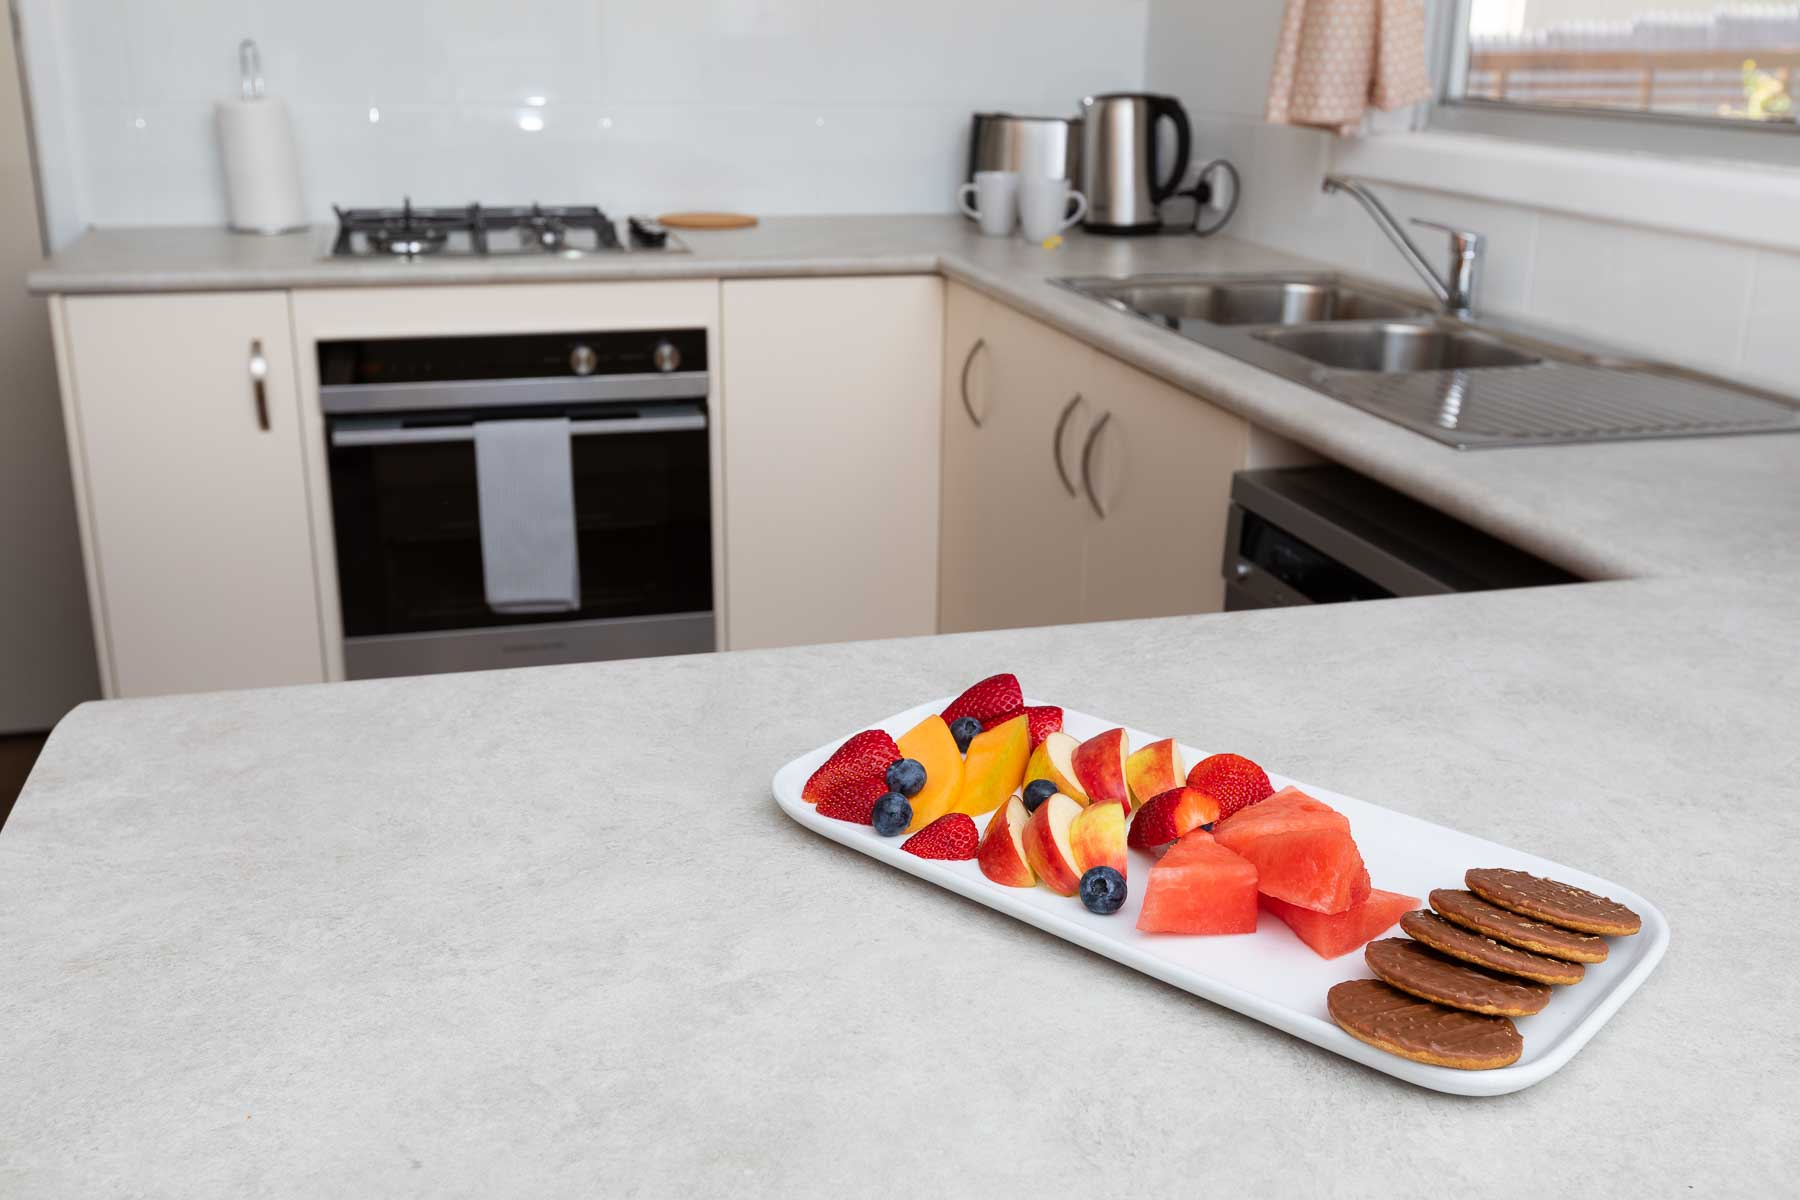 The kitchen is fully equipped just like a family home, to cater for up to 6 people.. - Full size fridge - Dishwasher - Microwave - Gas cooktop - Electric oven